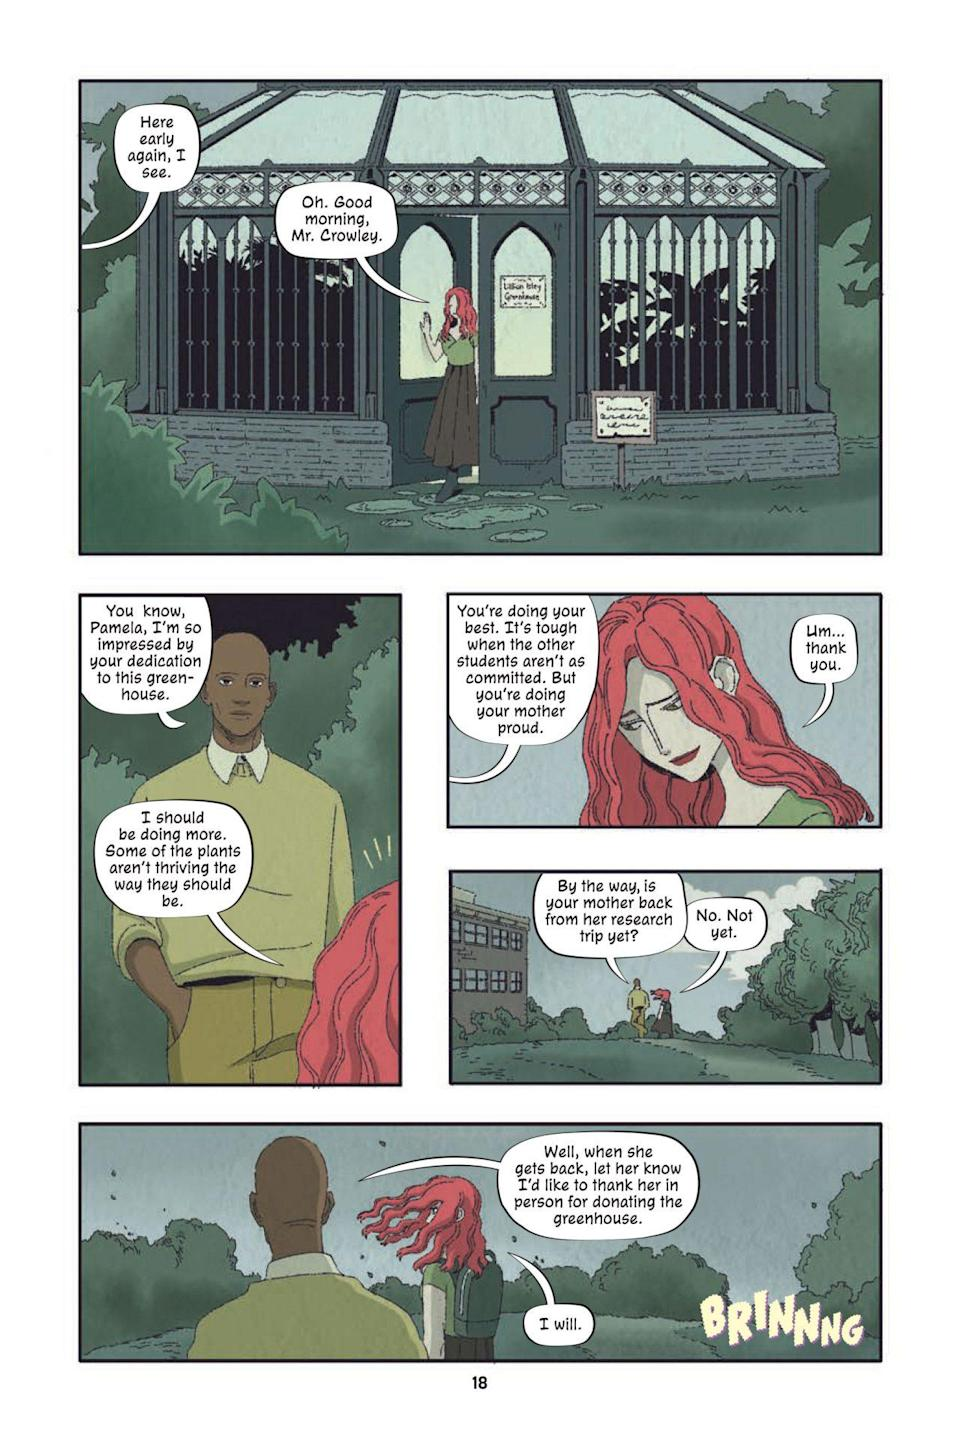 A page from Poison Ivy Thorns shows Ivy in the school garden talking with a male teacher